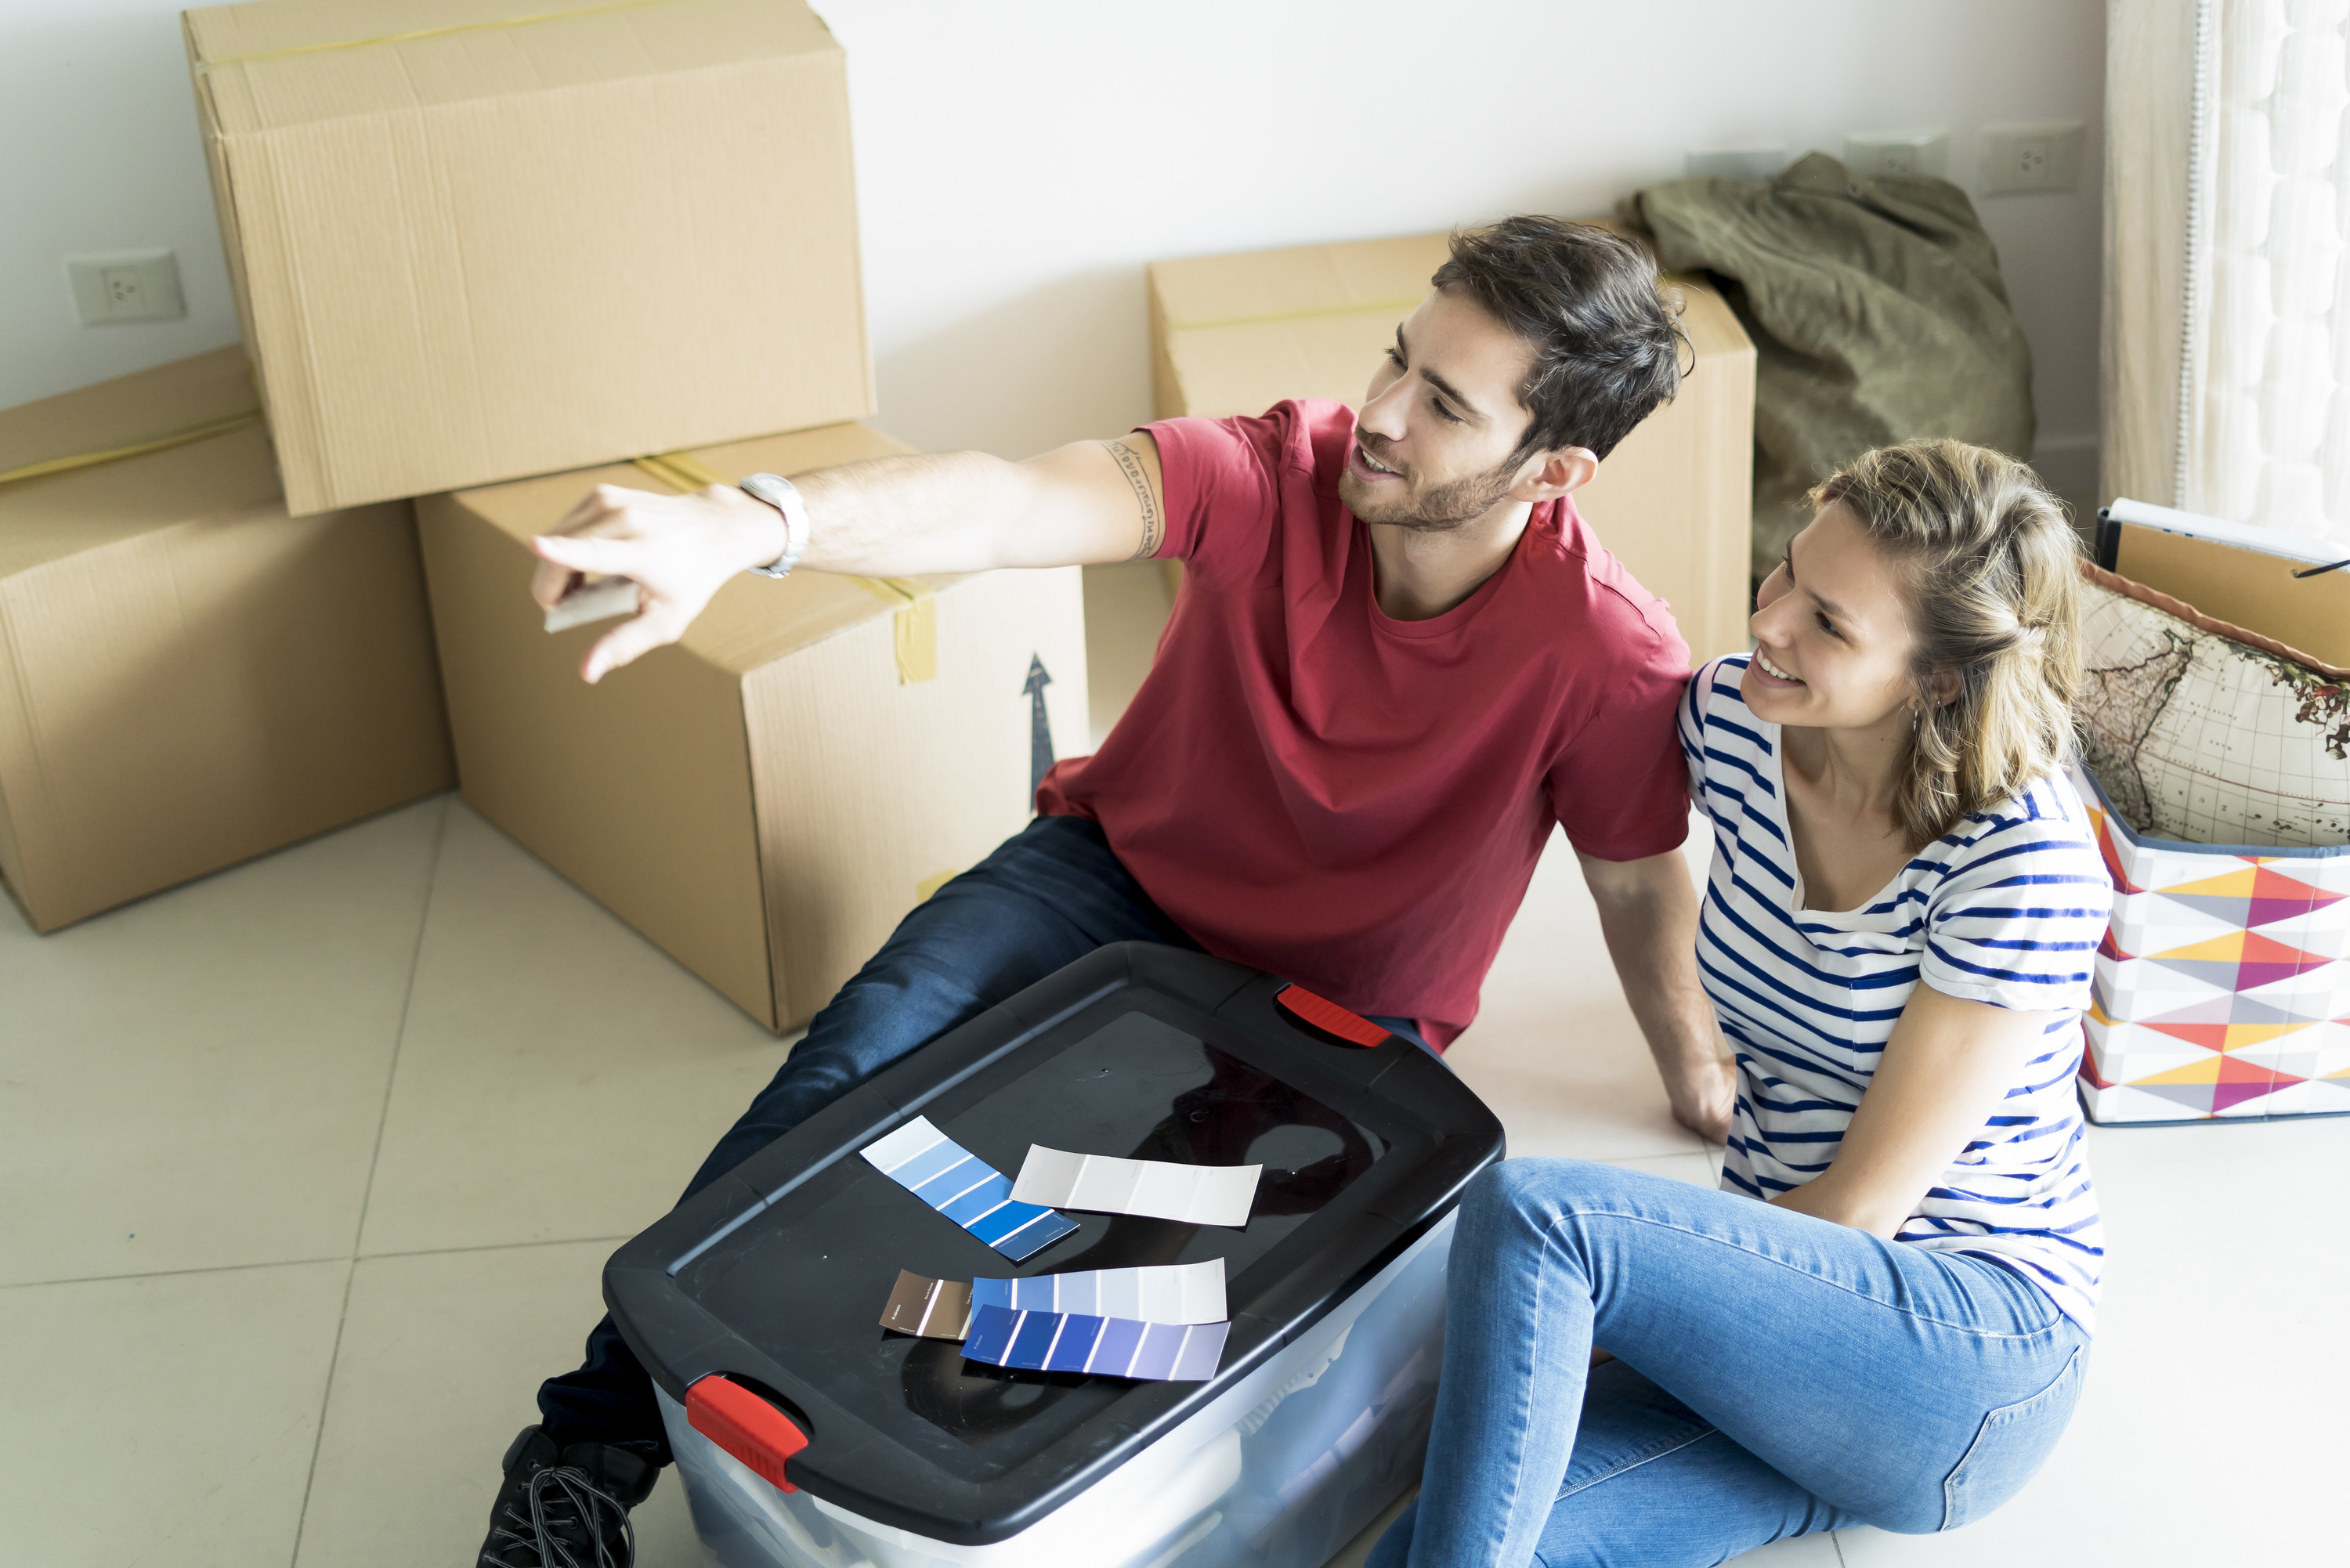 Couple sitting on the floor of their new home surrounded with boxes